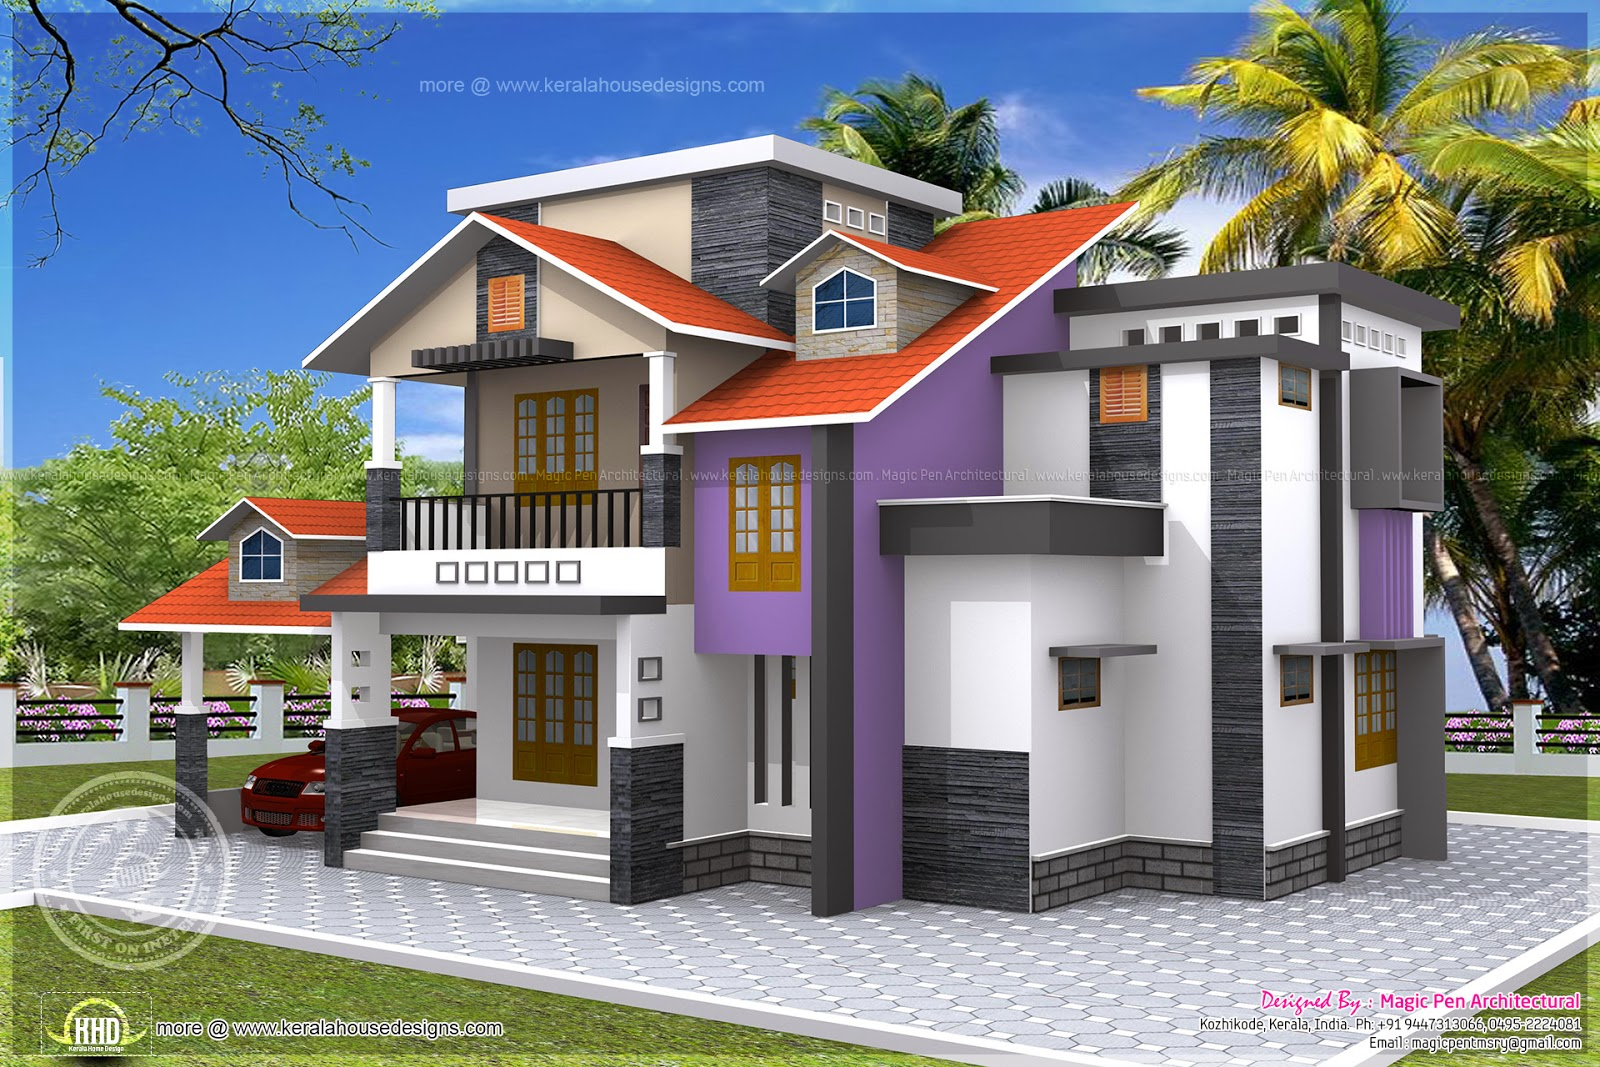 4 bedroom house exterior in 2240 square feet kerala home for 4 bedroom house exterior design